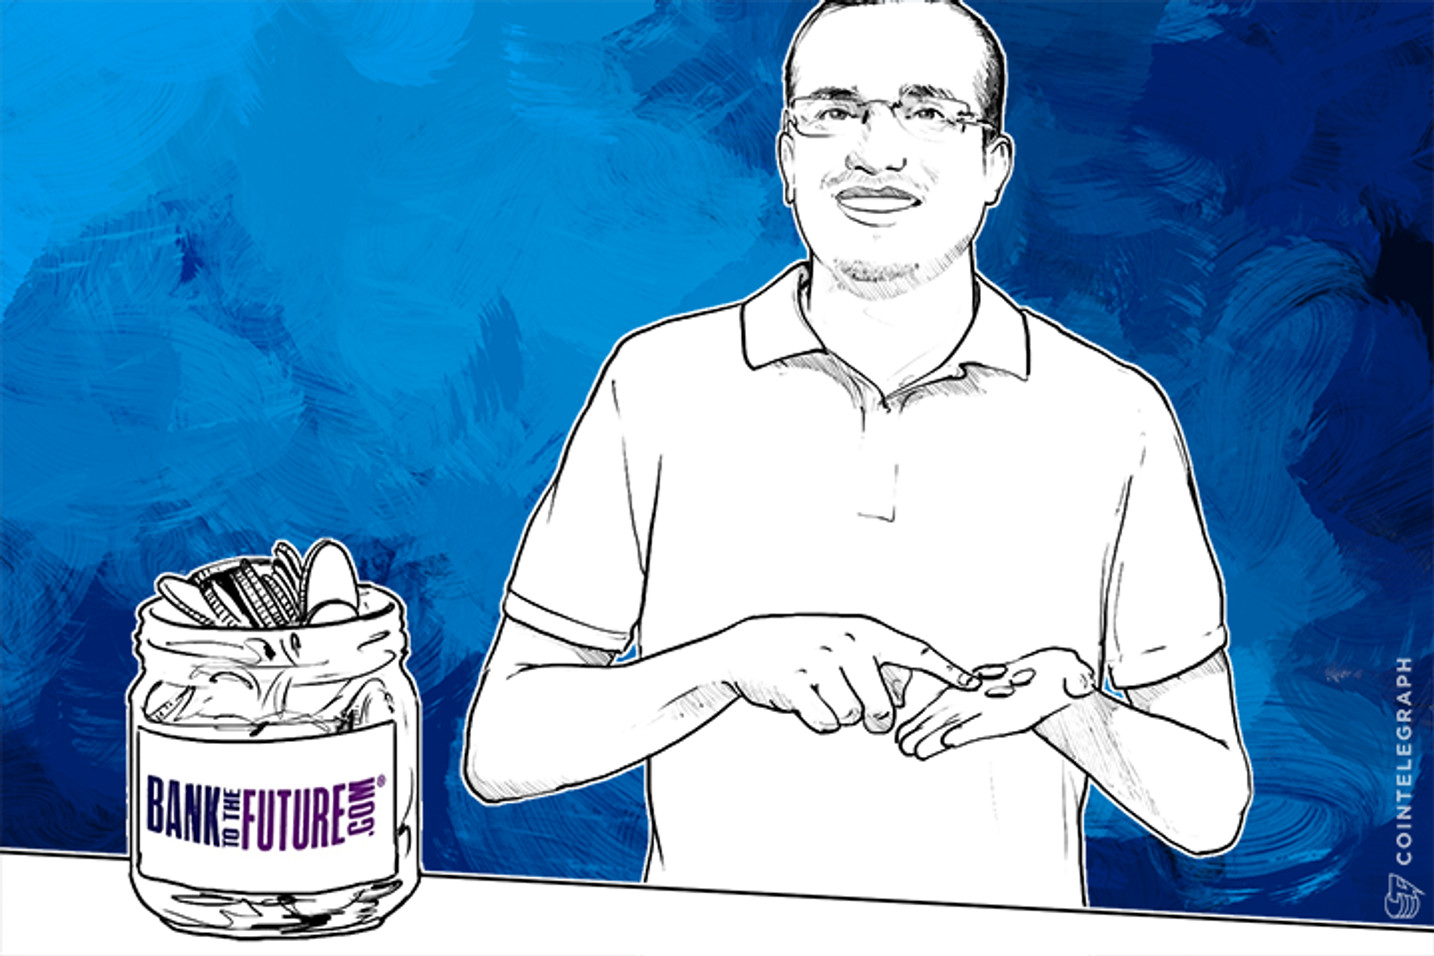 Simon Dixon: 'Bitcoin Solves 3 Major Problems in the Financial System'